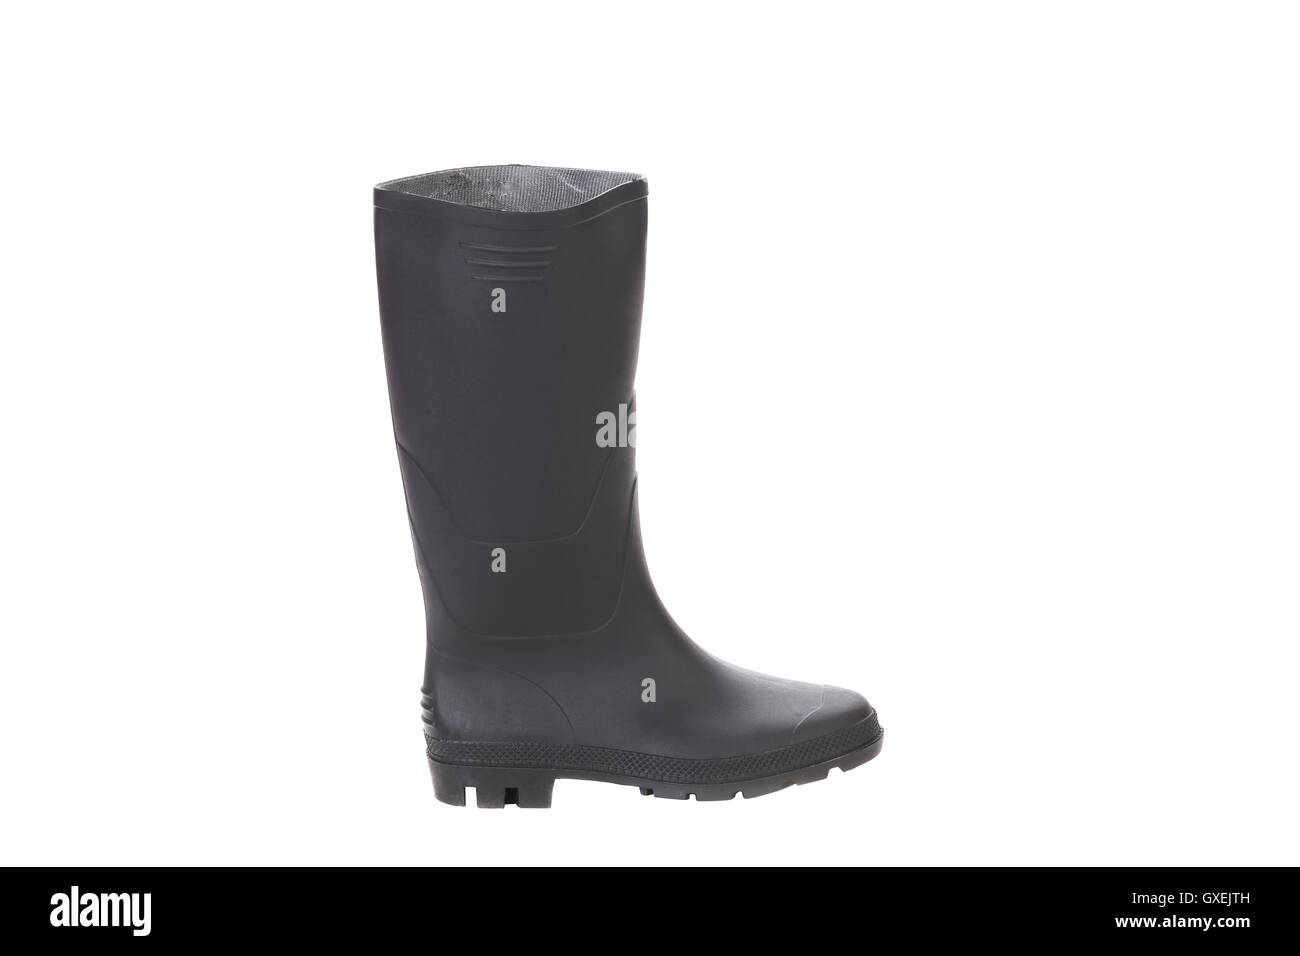 High rubber boot black color. Stock Photo